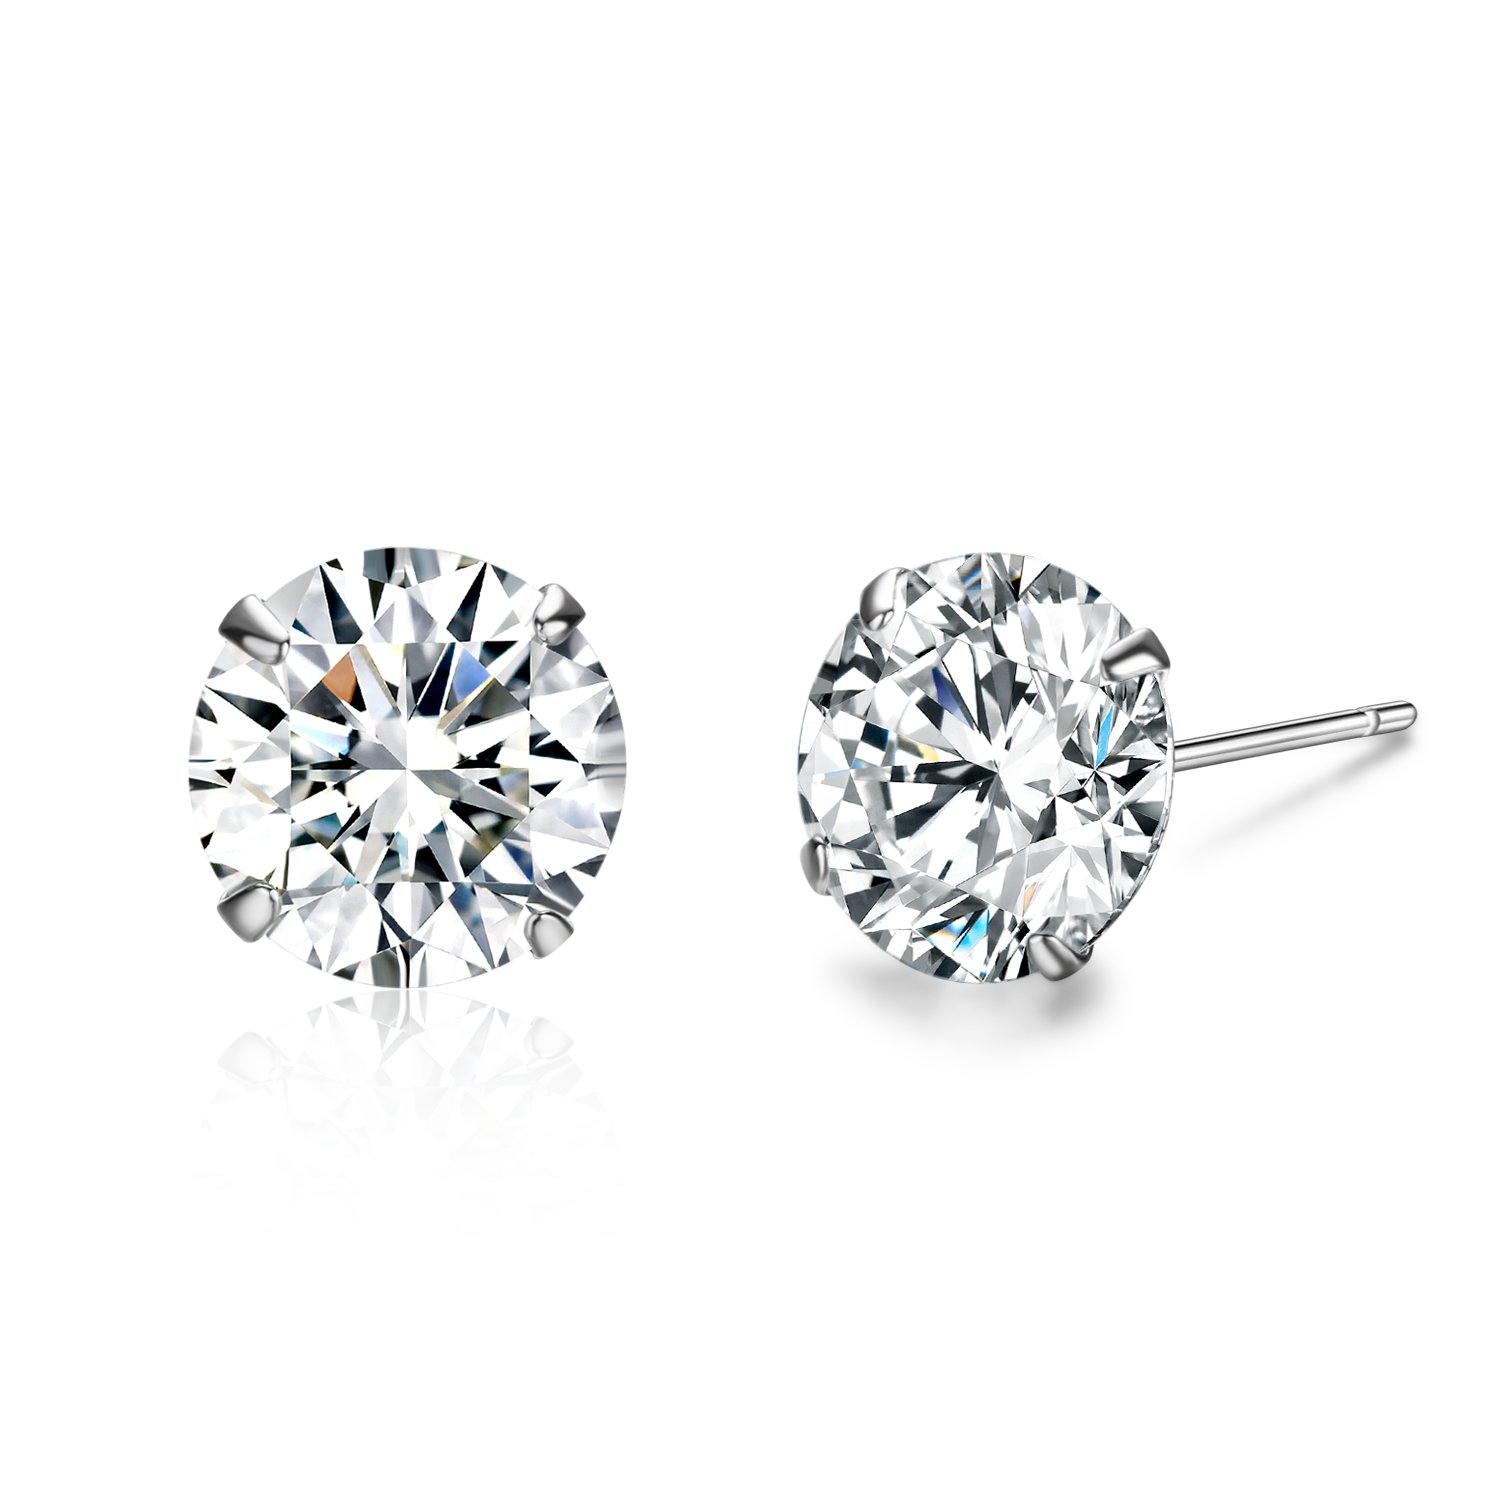 SBLING Platinum Plated Sterling Silver Stud Earrings Made with Swarovski Crystals(6mm;2.75cttw)